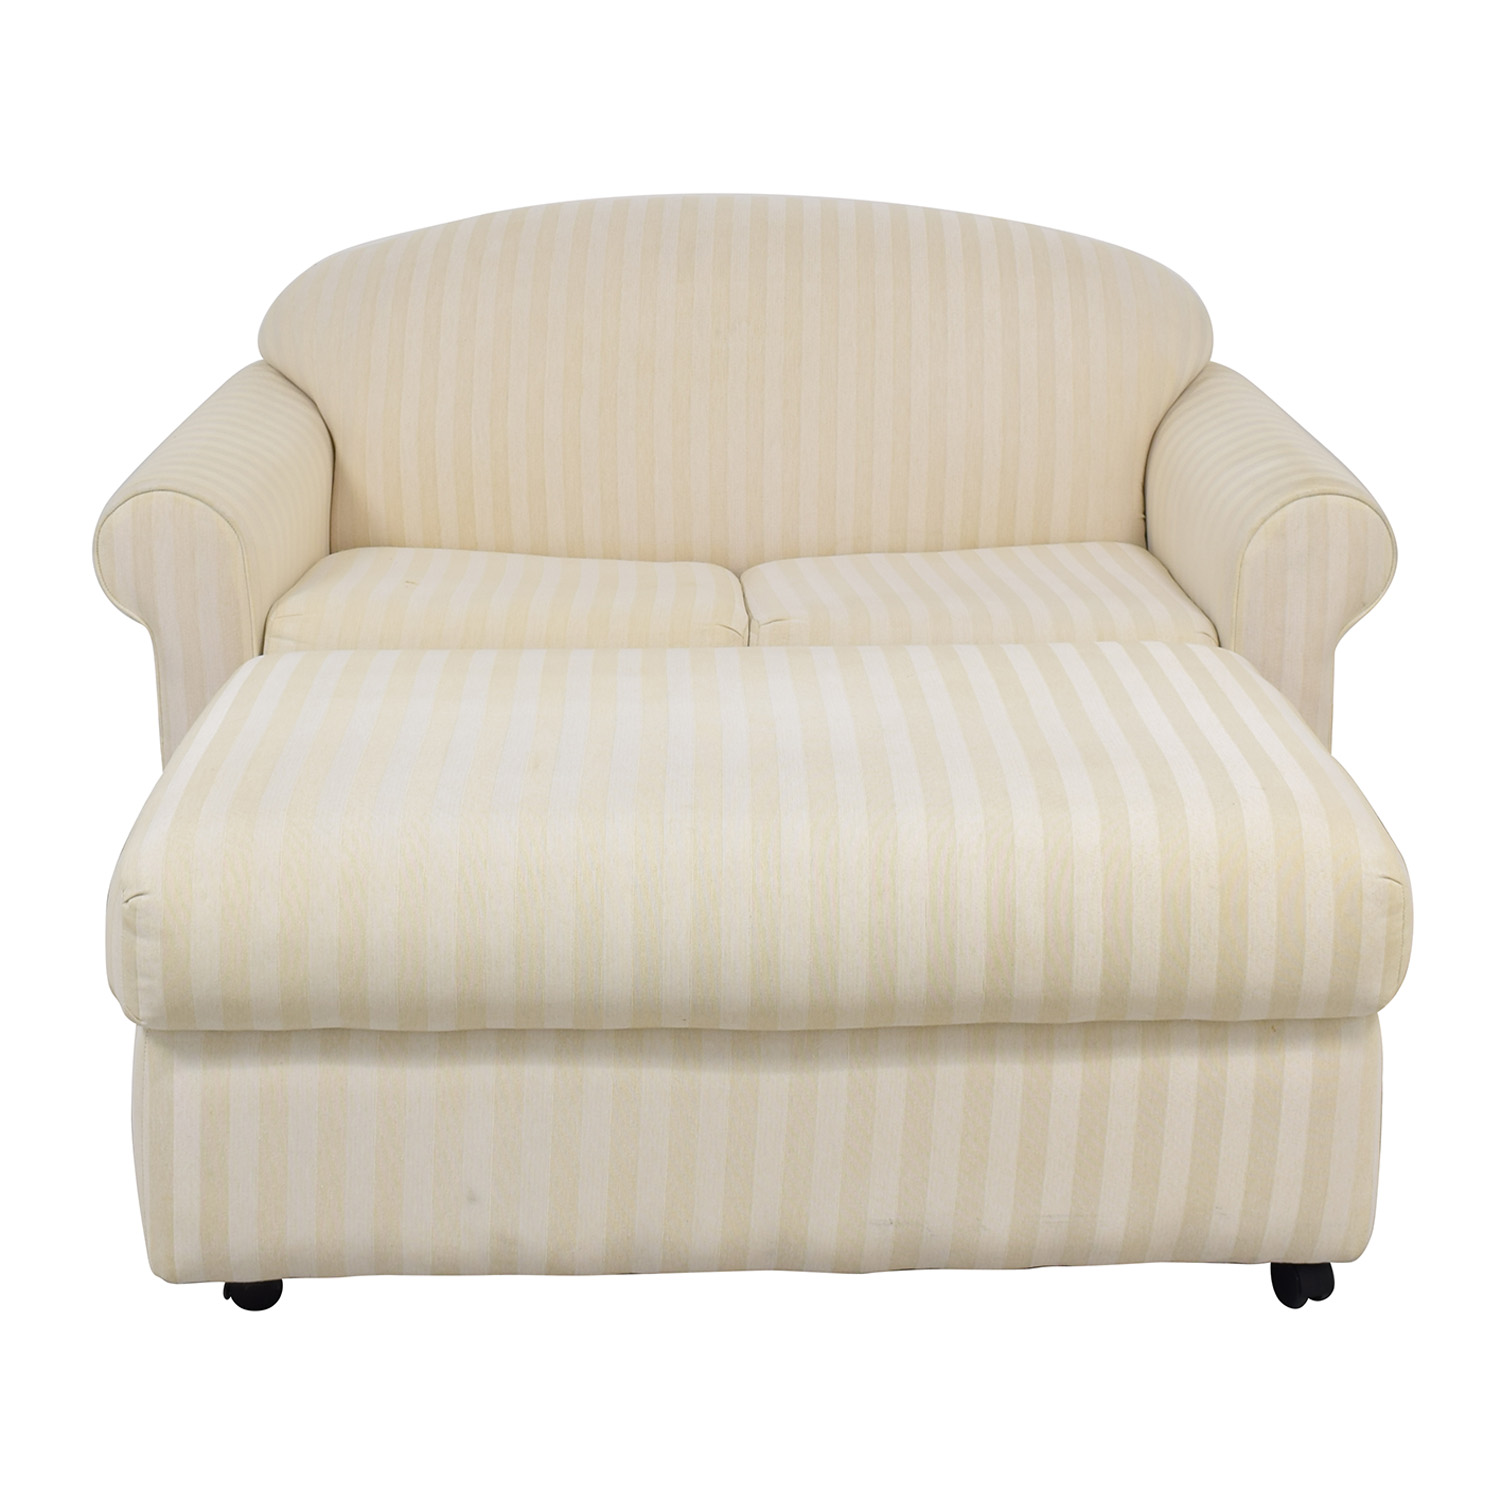 La-Z-Boy La-Z-Boy Sofa Sleeper with Ottoman ma